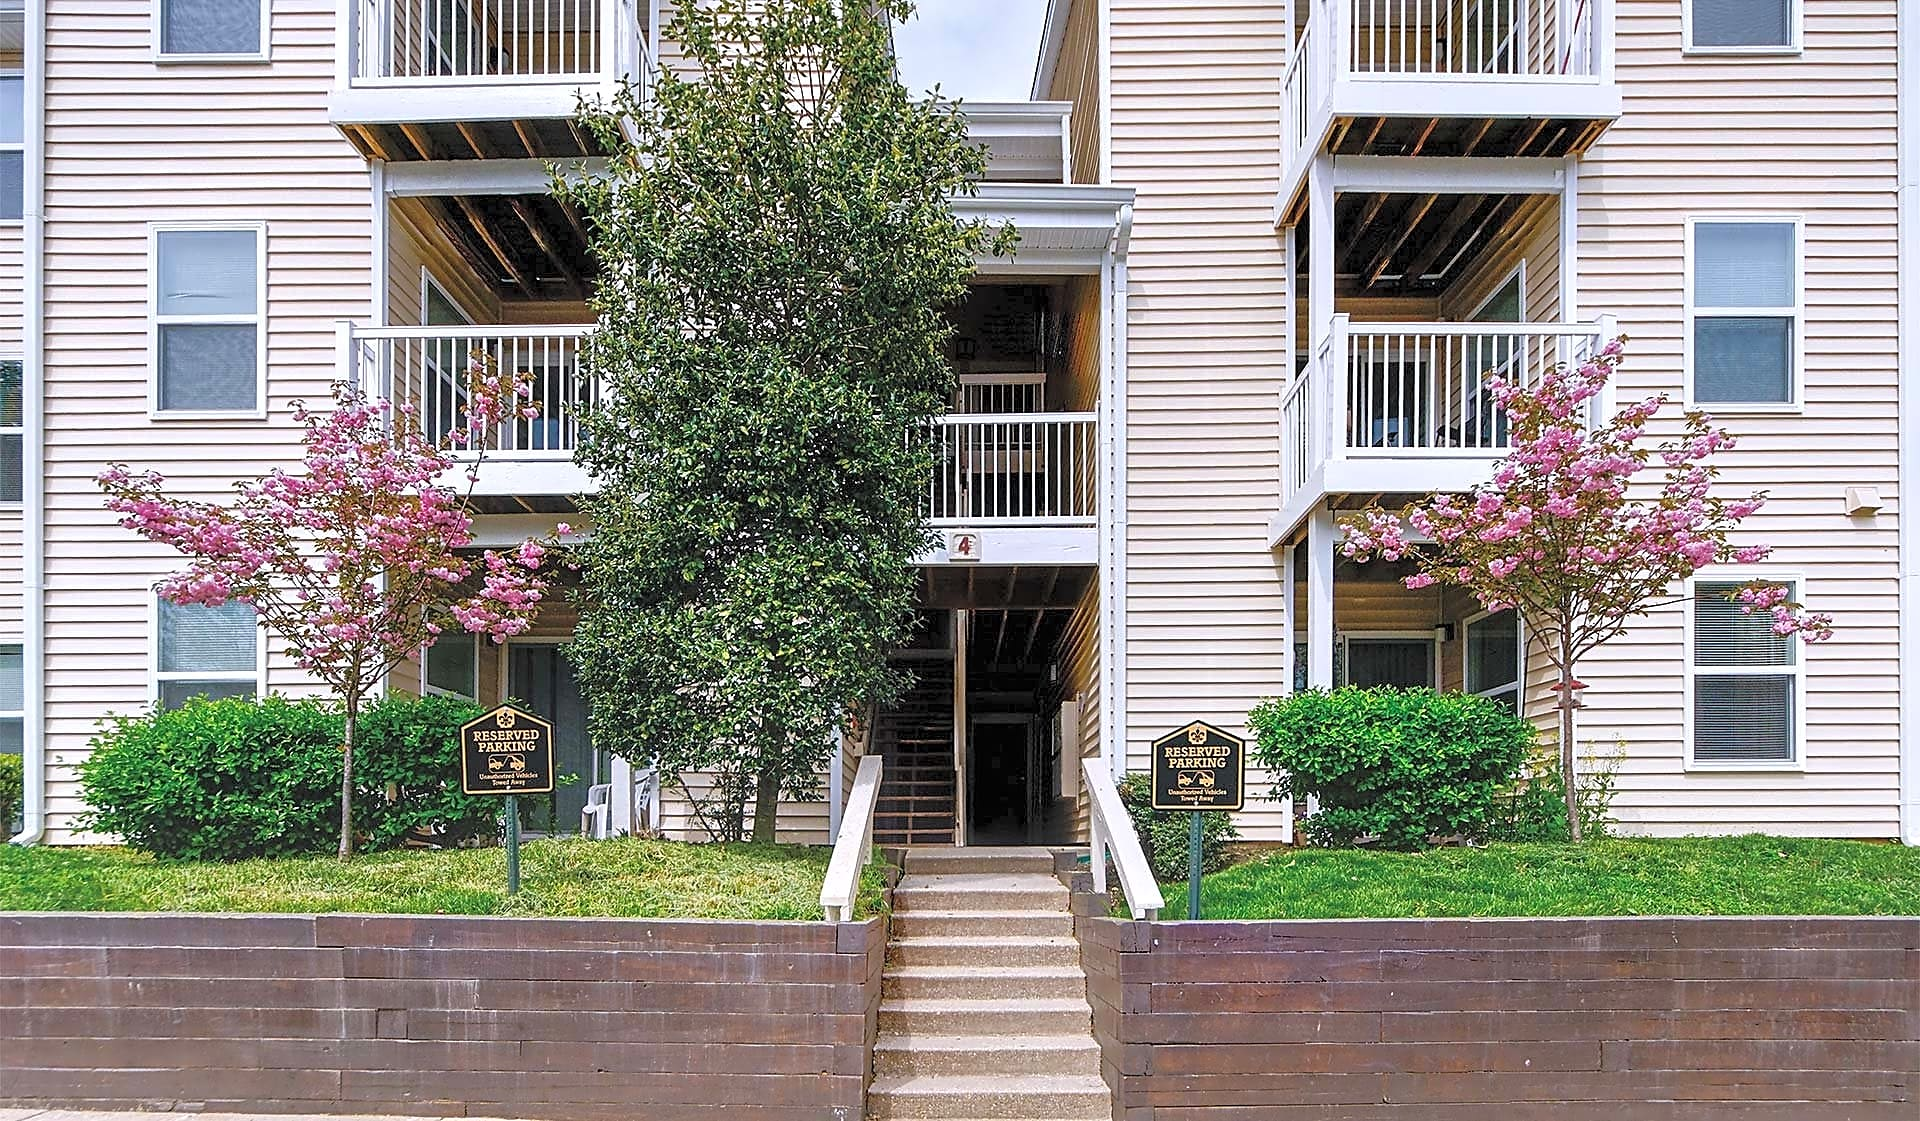 Our apartment homes feature central air and heat as well as a patio or balcony